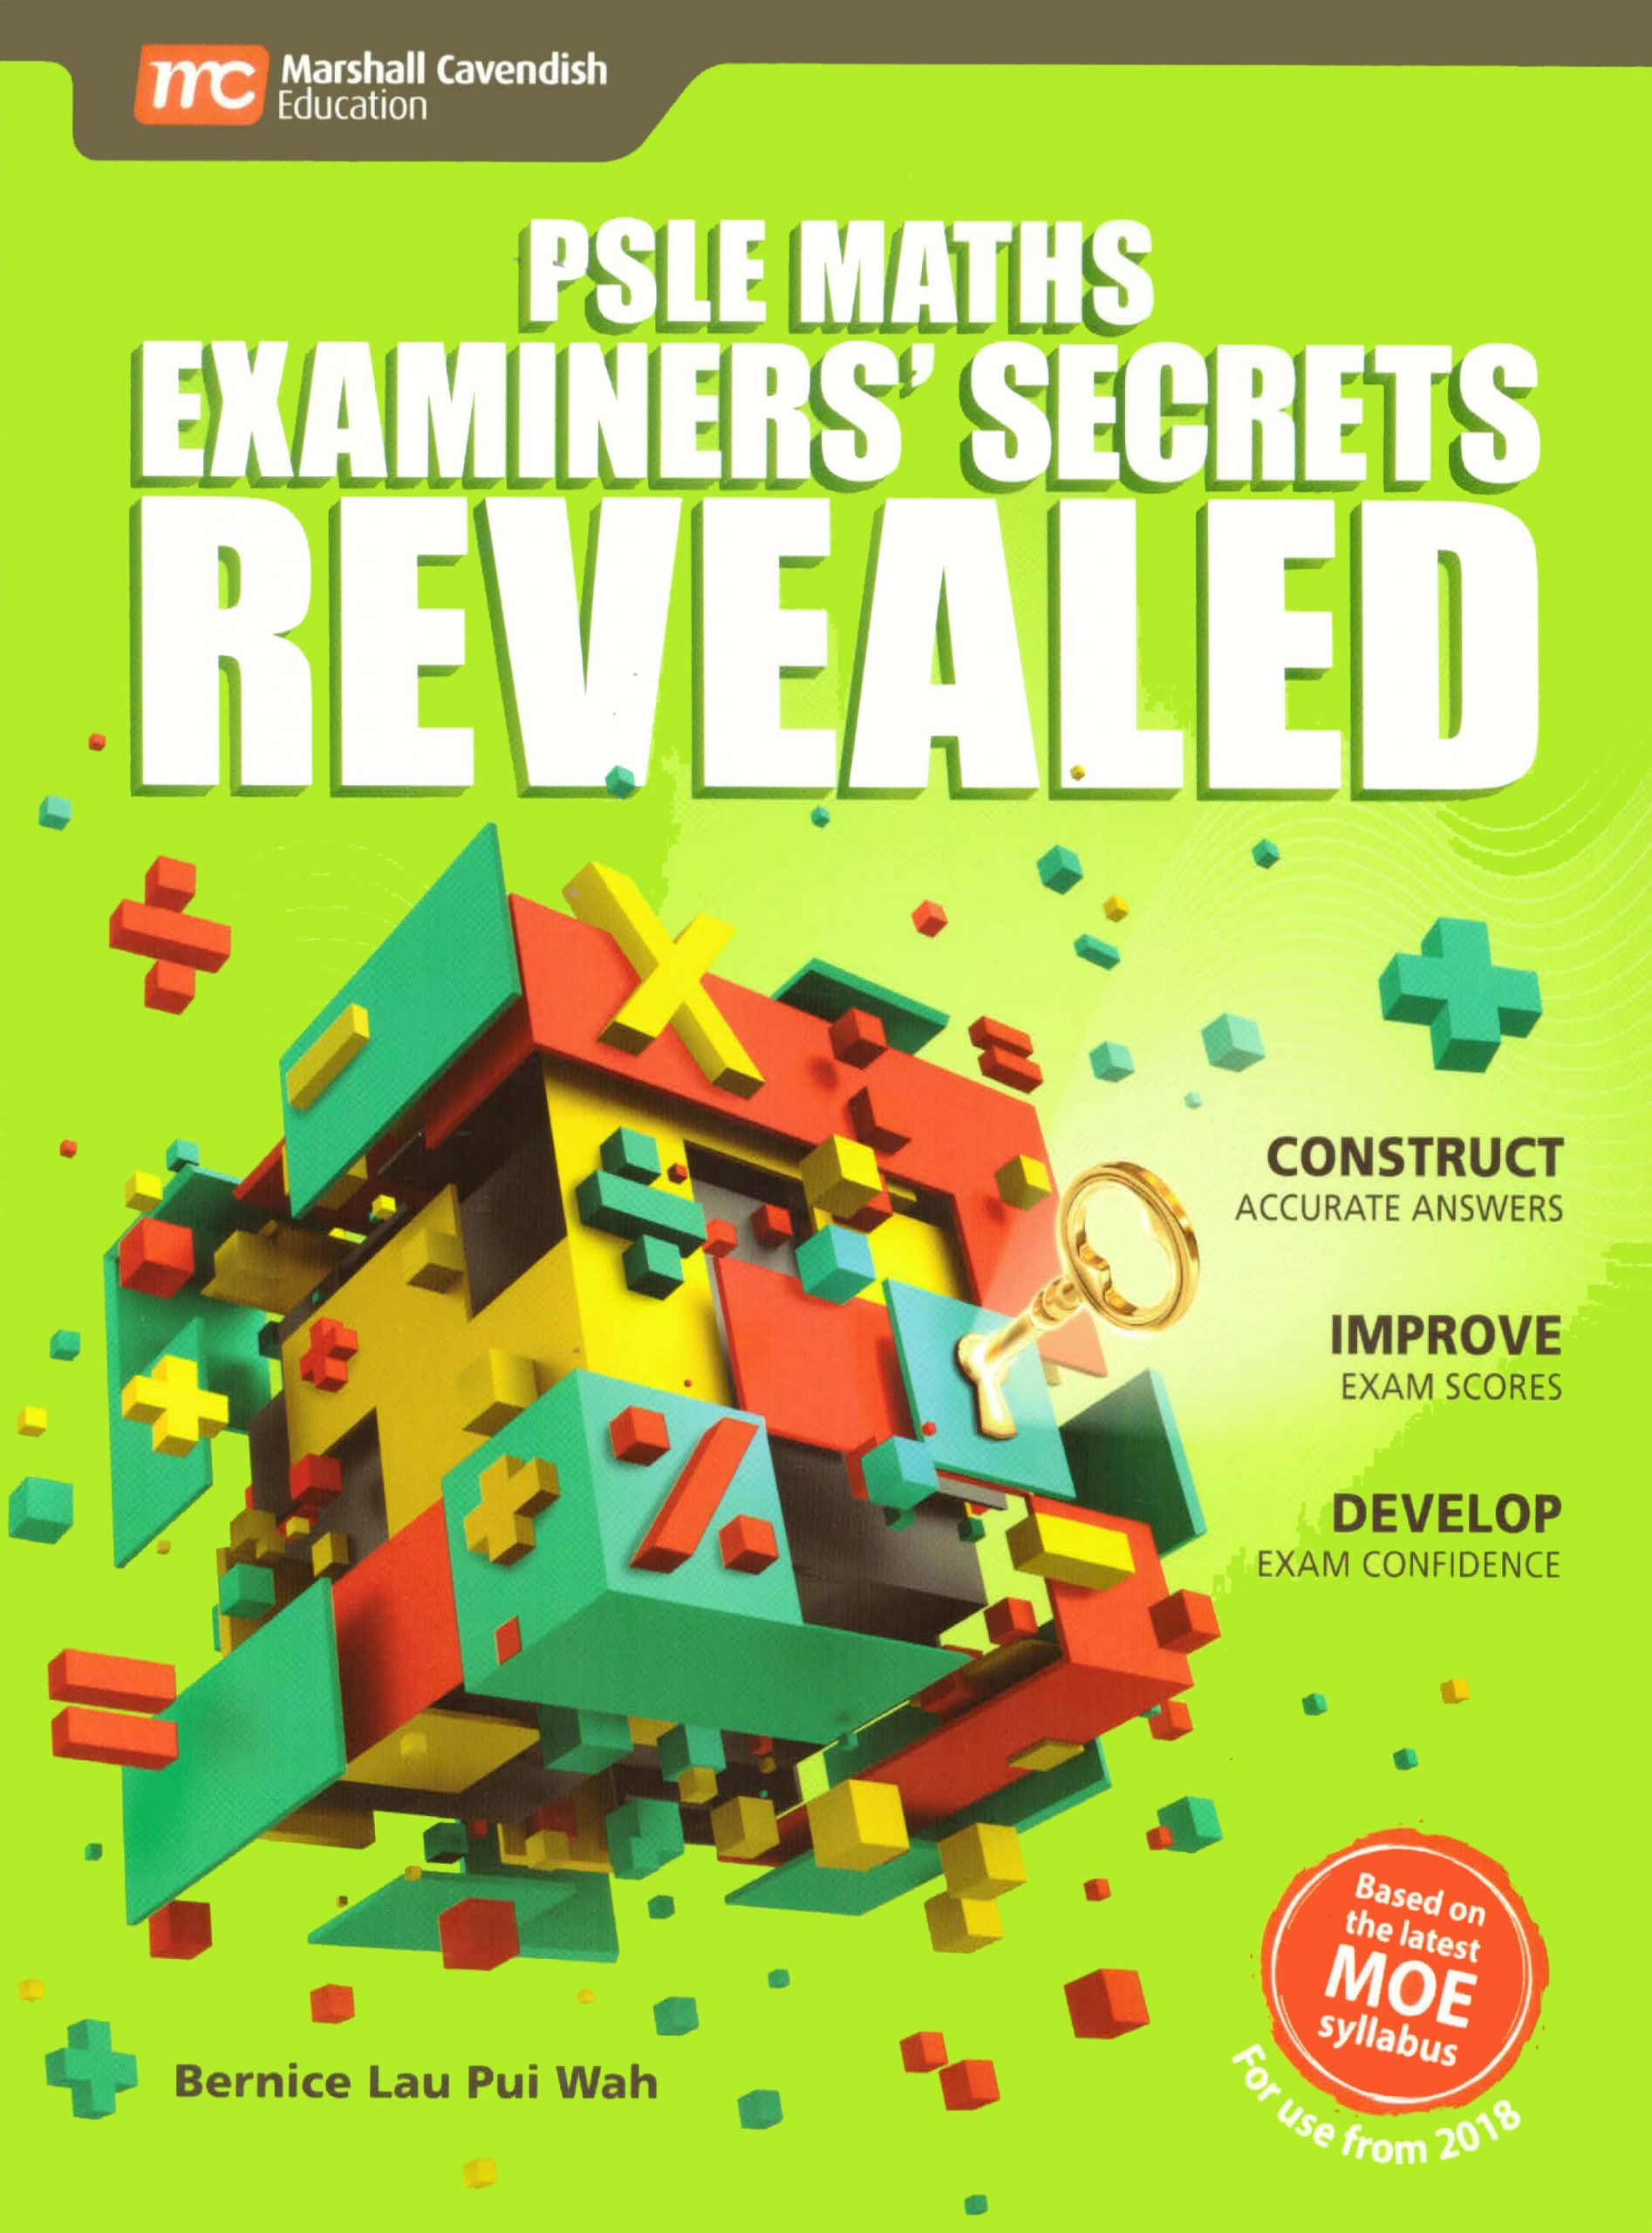 Examiner's secrets to PSLE Maths